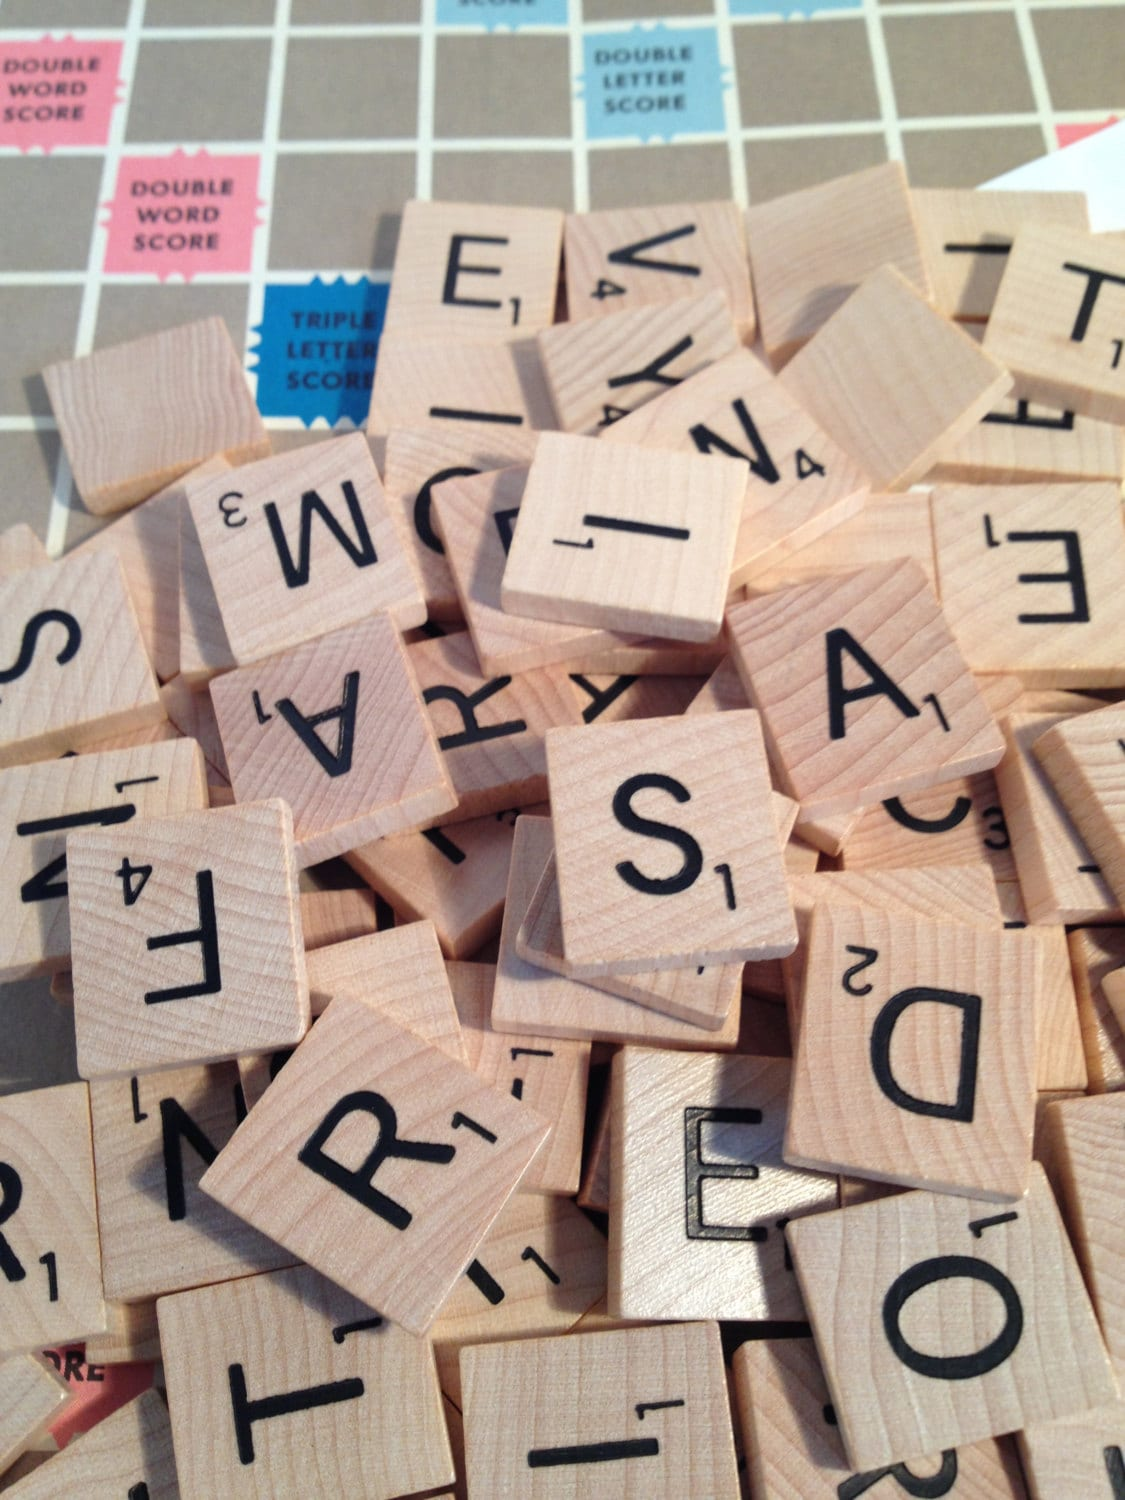 50 Scrabble Tiles Random Letters Or YOU CHOOSE Any